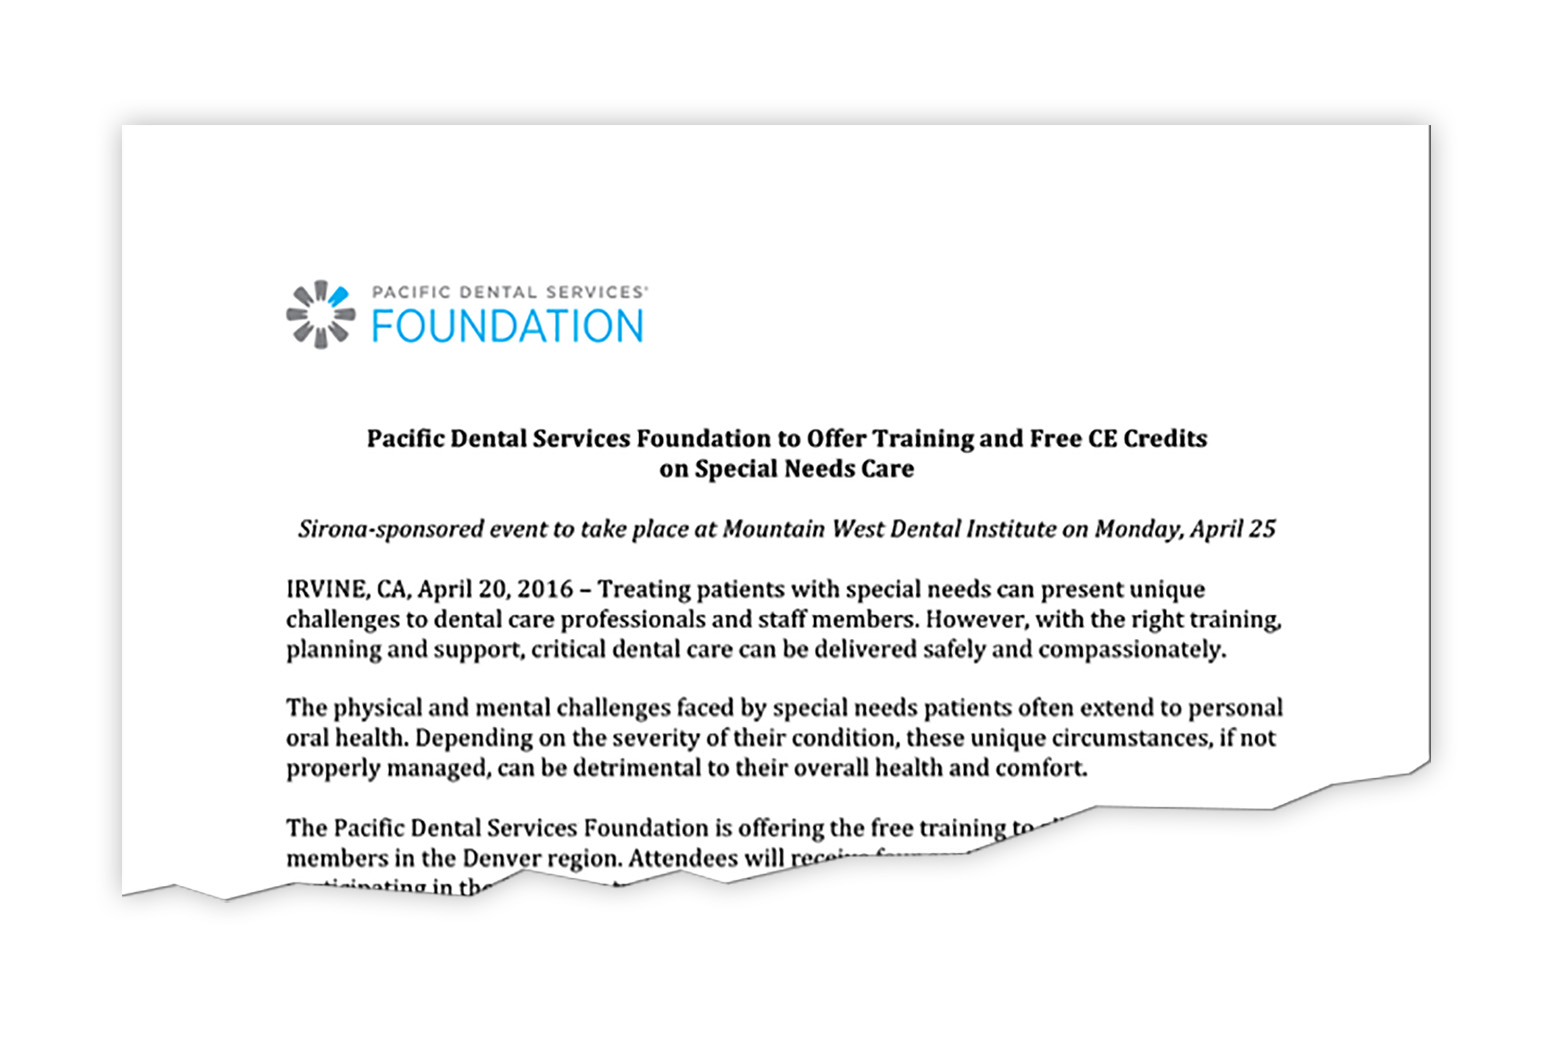 CLIENT: PACIFIC DENTAL SERVICES NEWS RELEASE ANNOUNCING CONTINUING EDUCATION TRAINING IN DENTAL CARE FOR SPECIAL NEEDS PATIENTS IN THE DENVER, CO REGION.